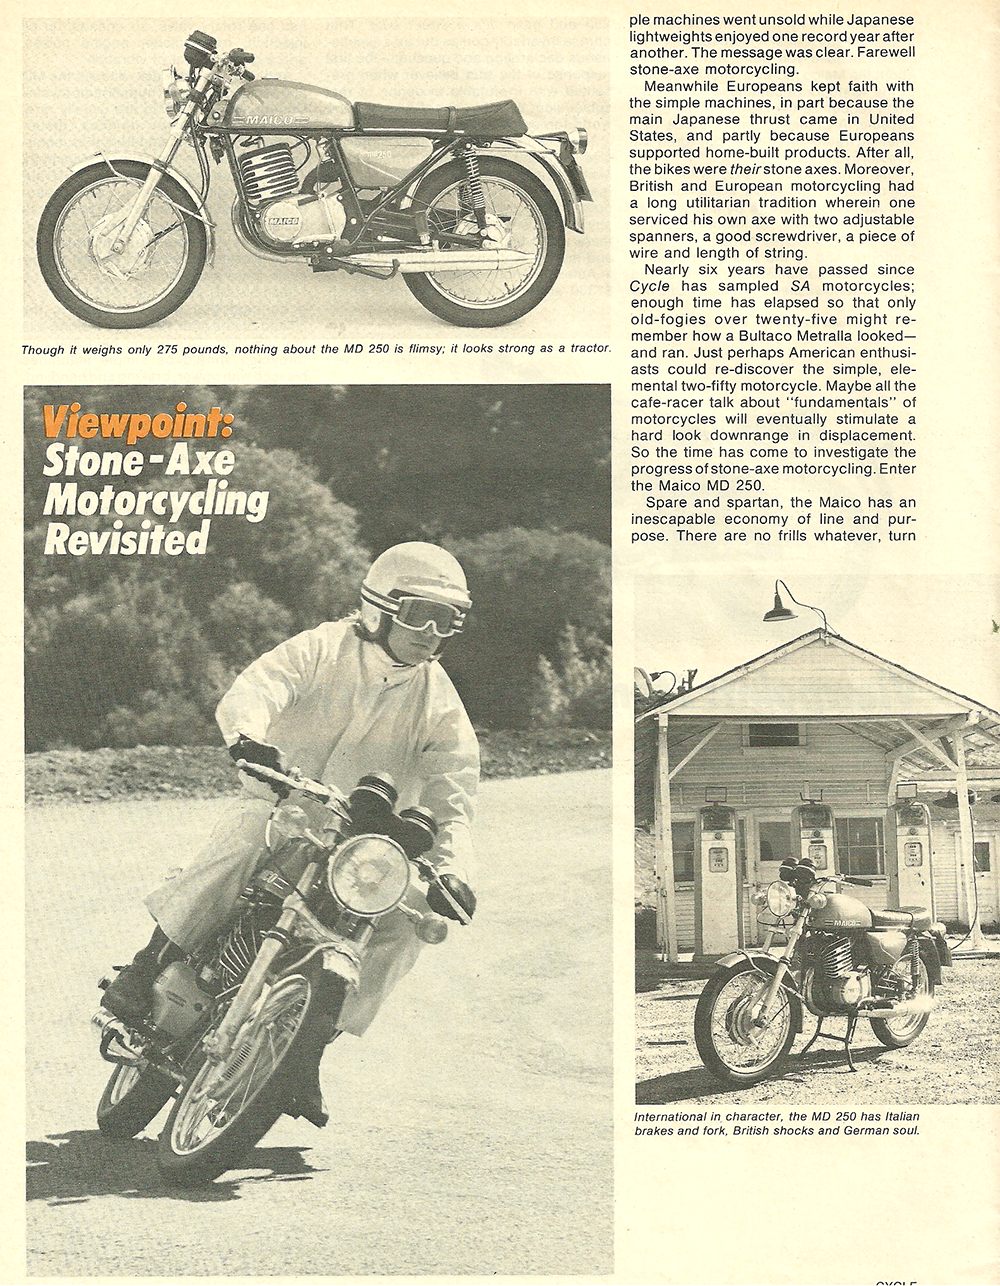 1975 Maico MD250 road test 2.png